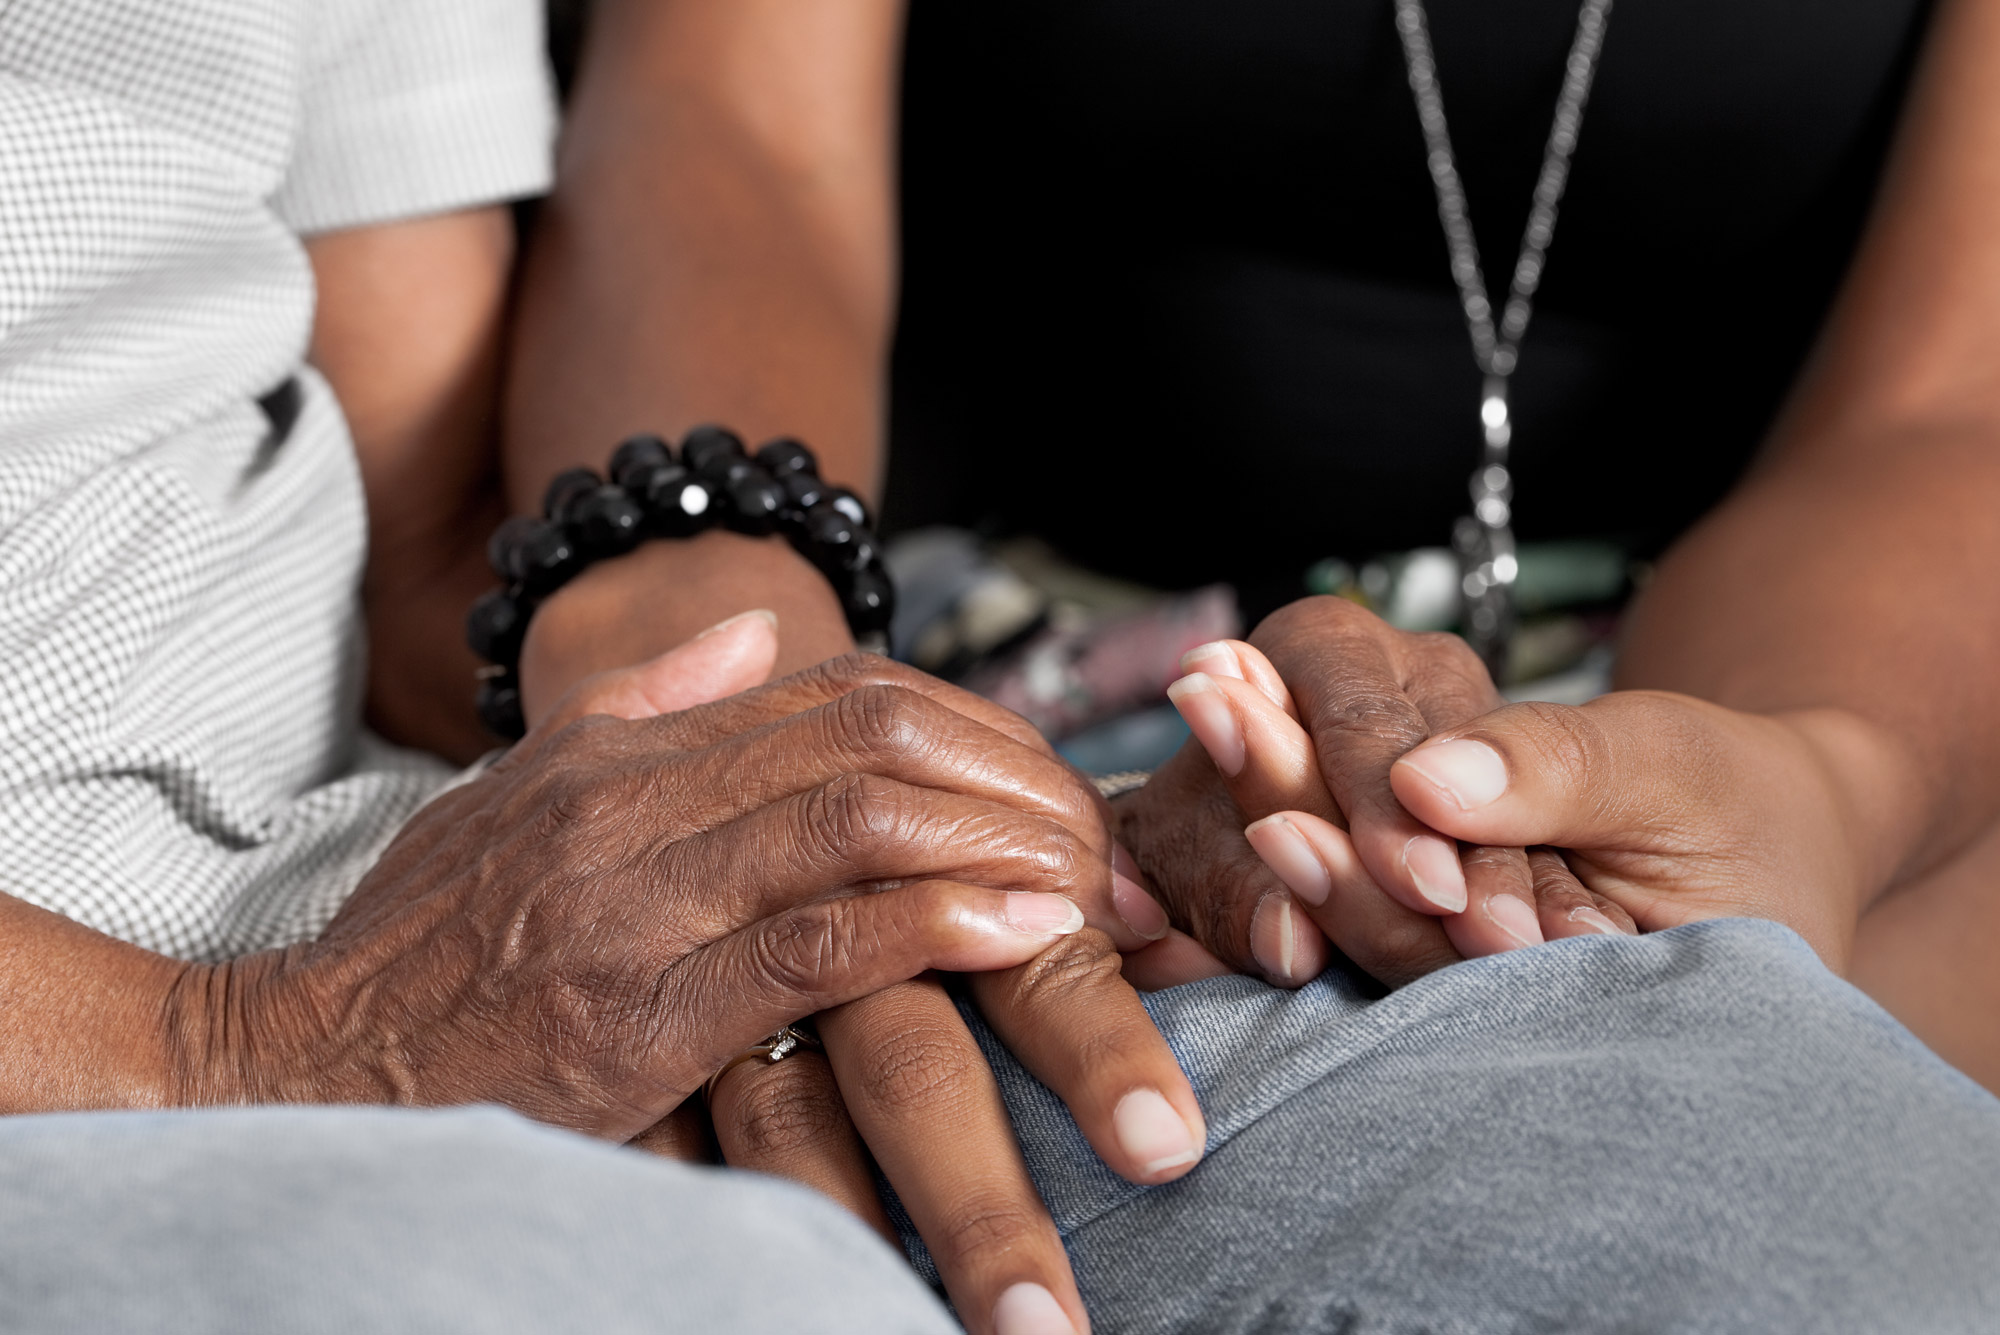 A photo of two people holding hands in a comforting way